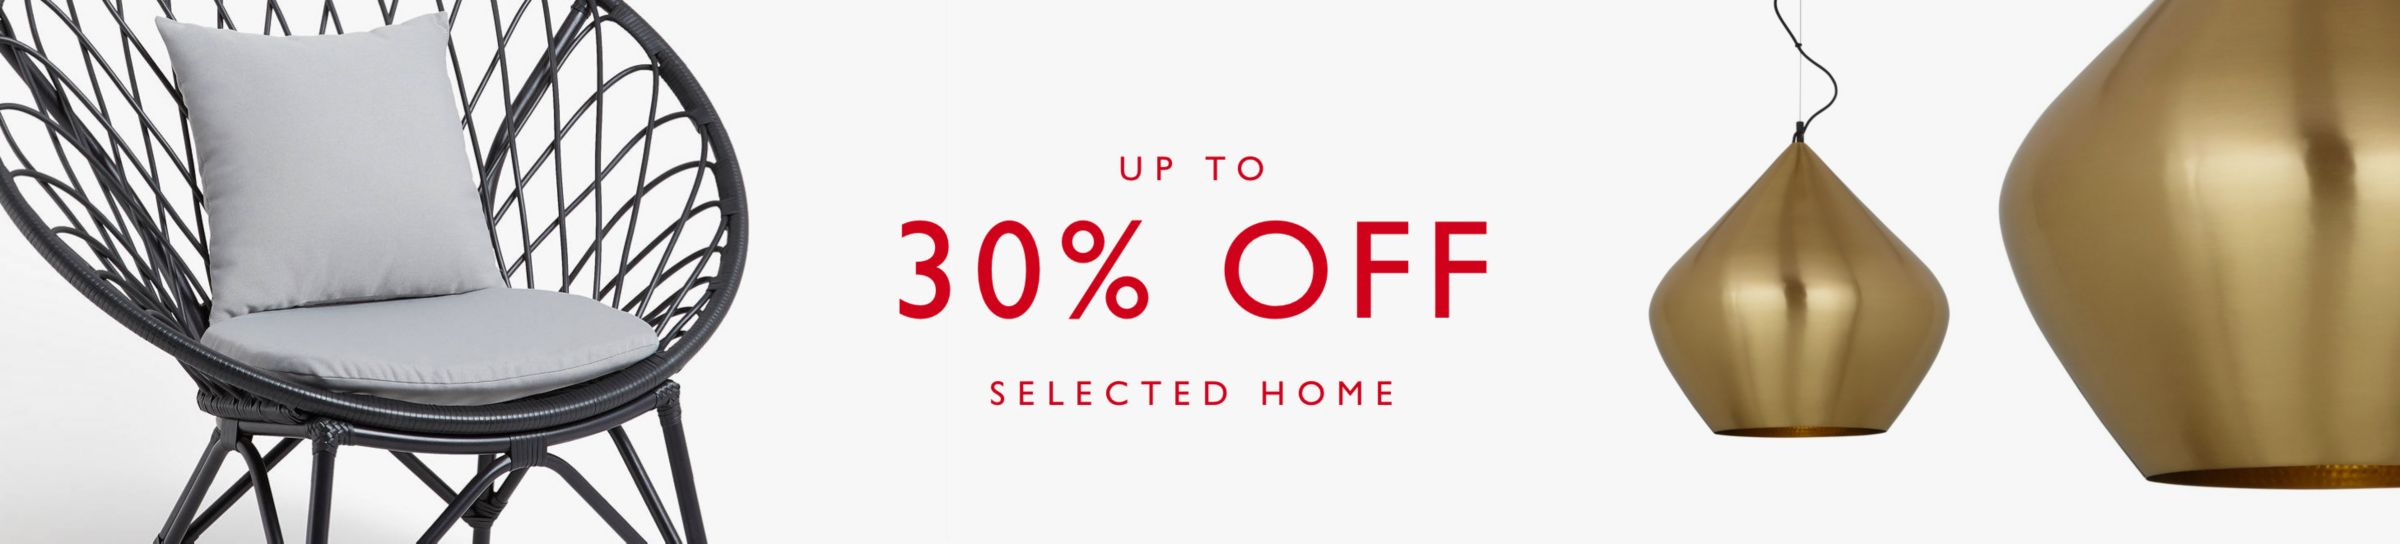 Up to 30% off selected Home